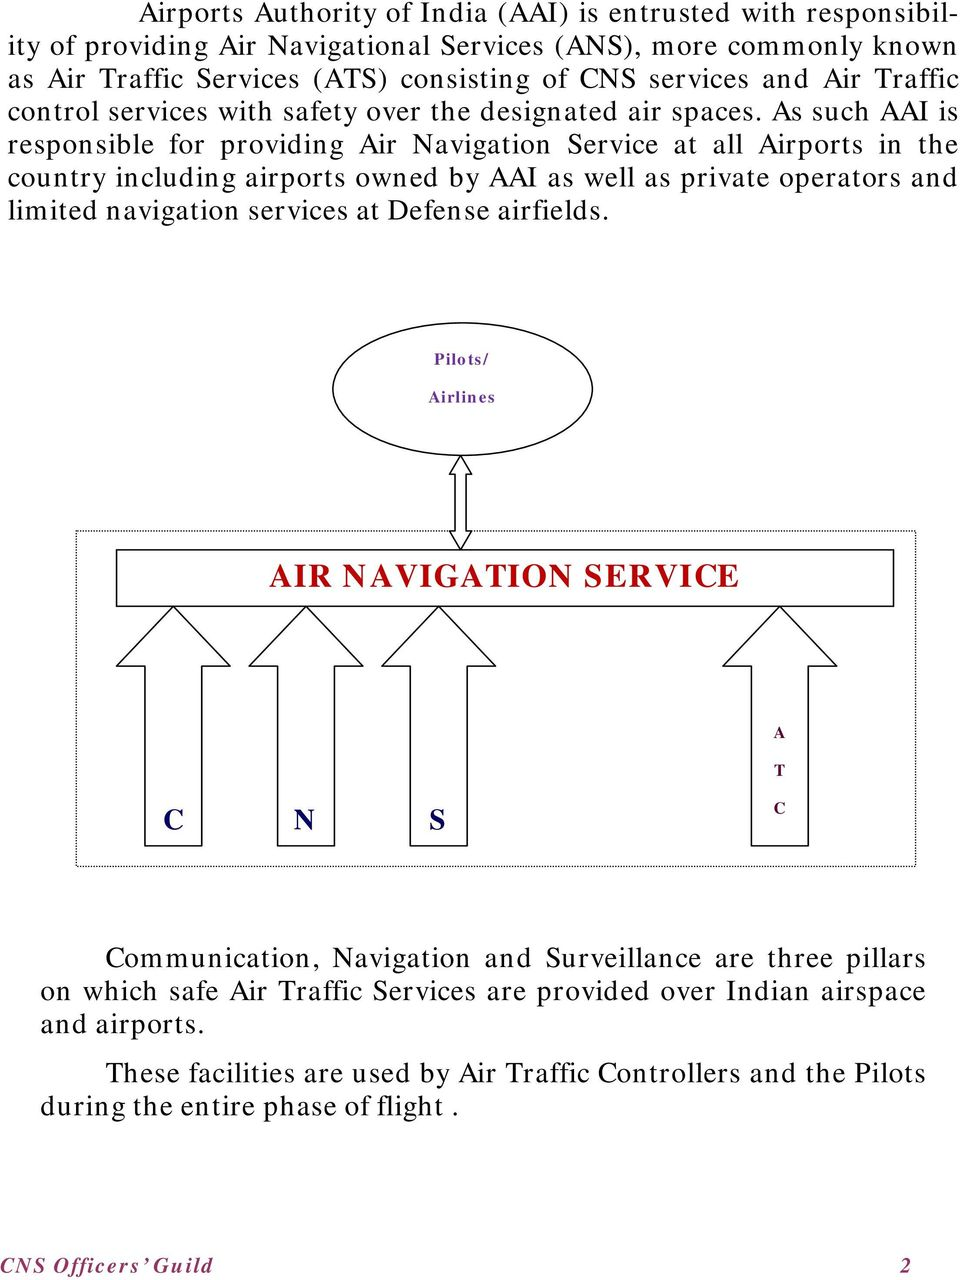 As such AAI is responsible for providing Air Navigation Service at all Airports in the country including airports owned by AAI as well as private operators and limited navigation services at Defense